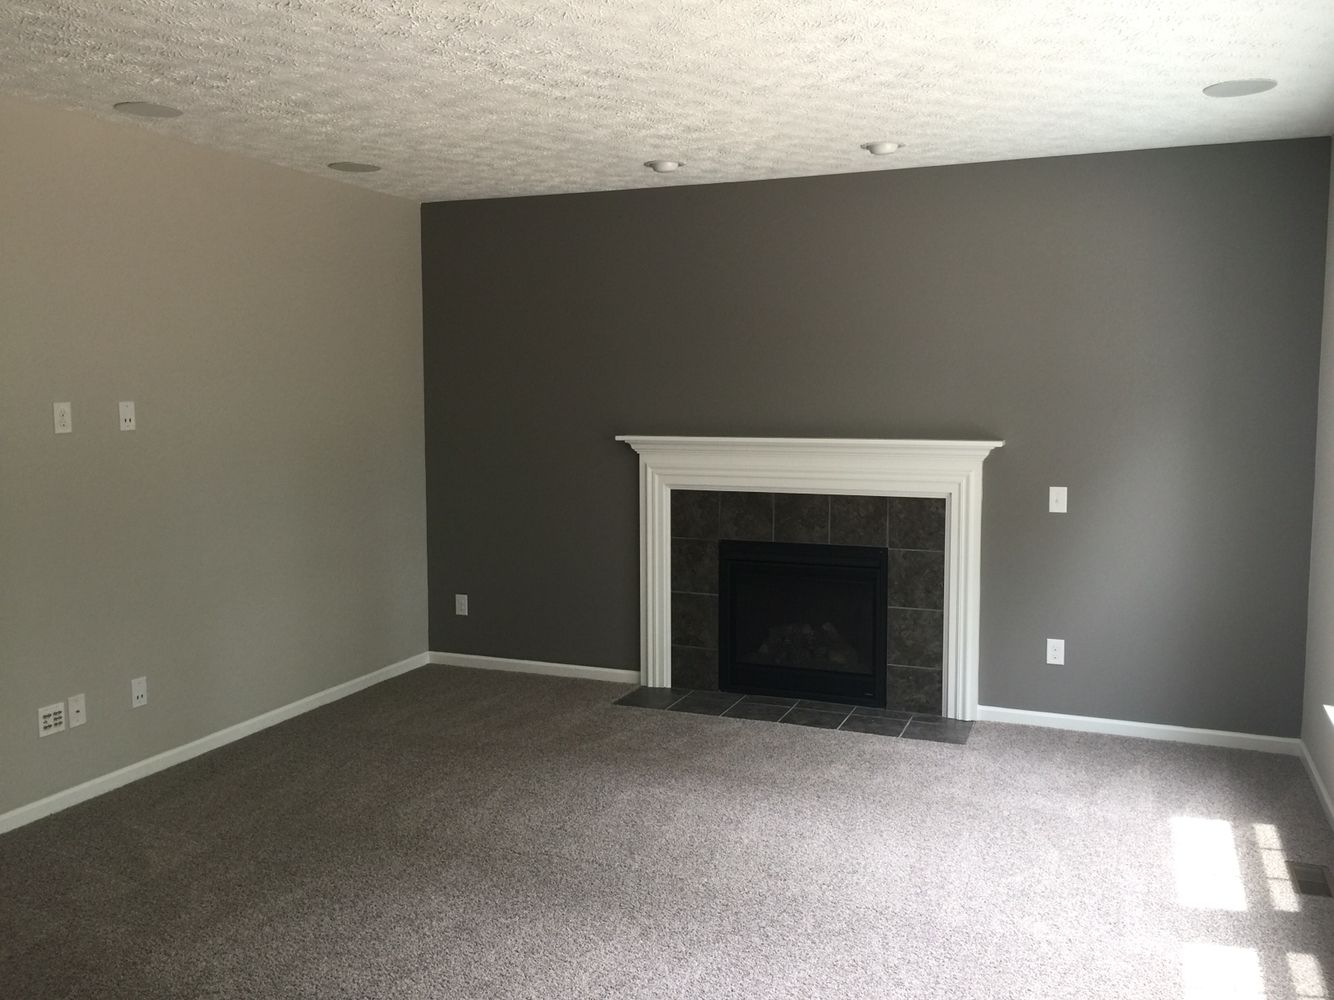 Our Carpet Is Mohawk Brand In Rainswept Gray The Dark Gray Accent Wall Is Done In Sherwin